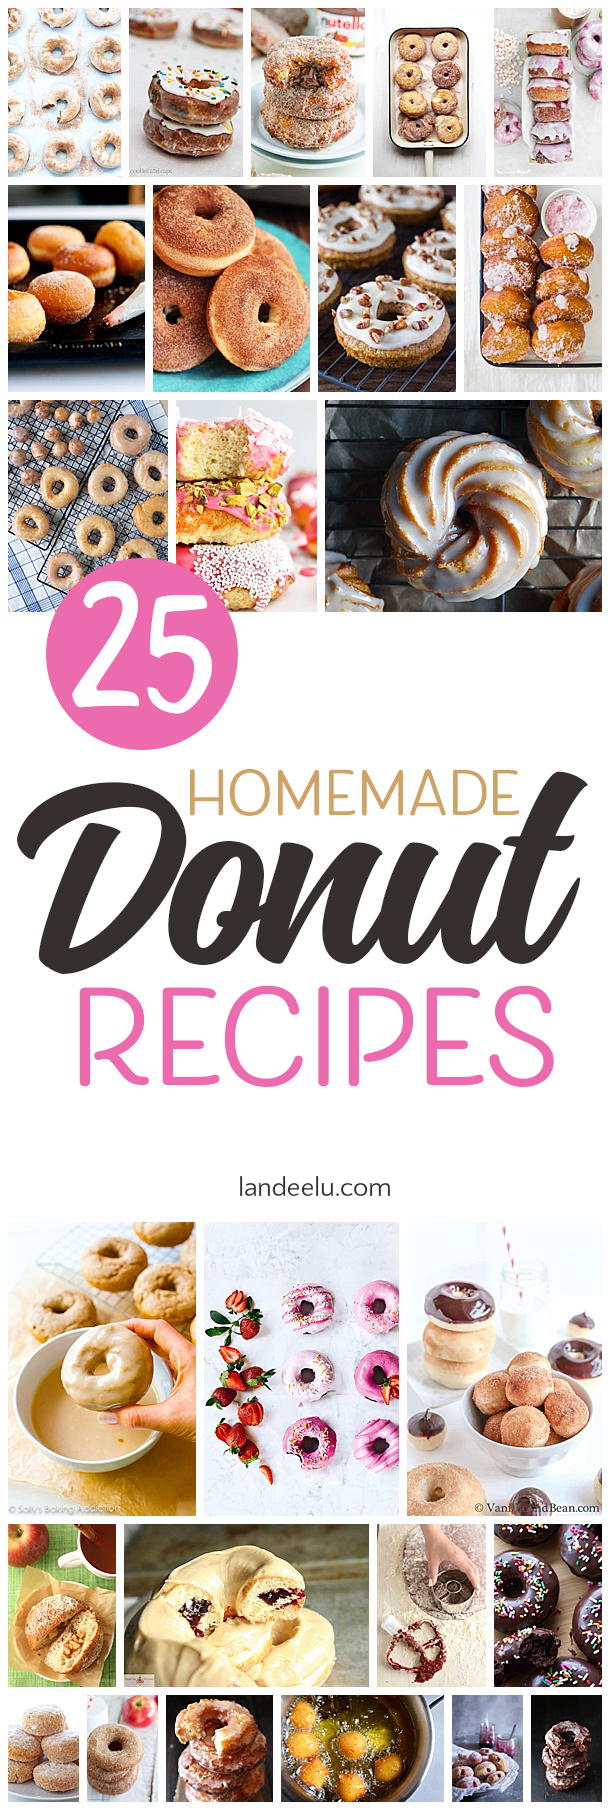 25 Delicious Homemade Donuts Recipes that you can make in your own kitchen! #donuts #homemadedonuts #dessert #desserts #dessertrecipes #doughnuts